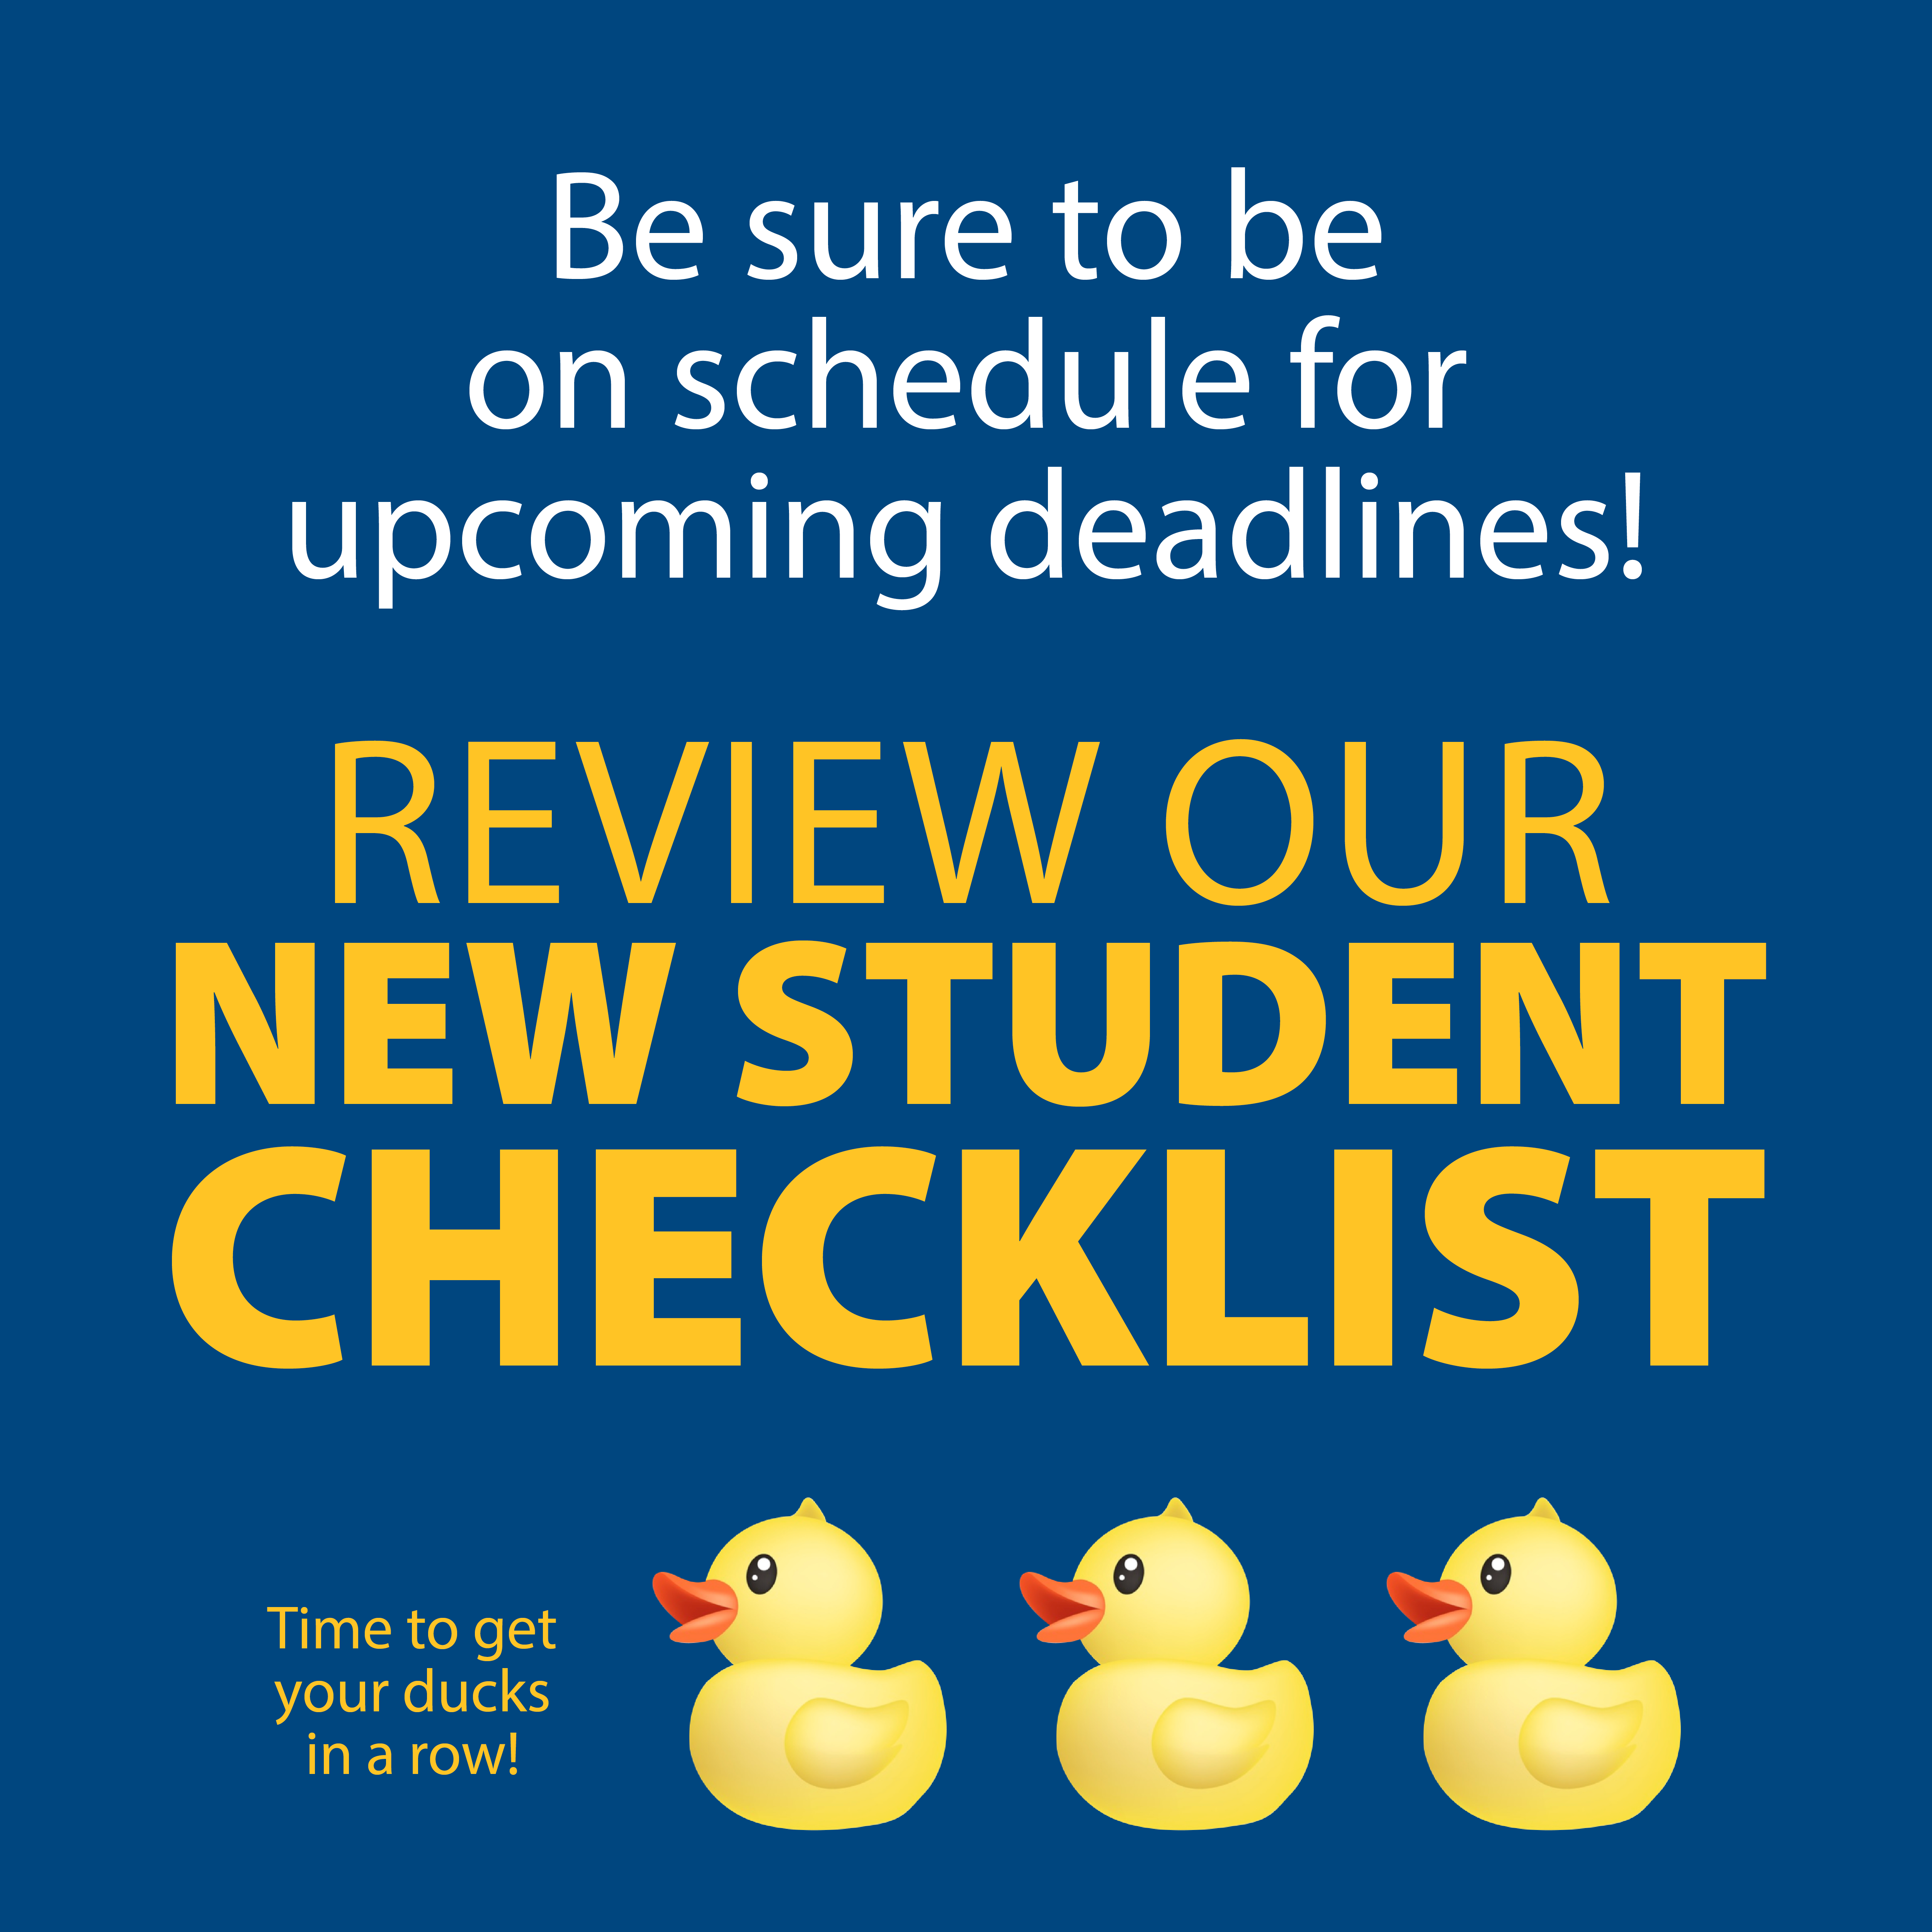 Review the New Student Checklist